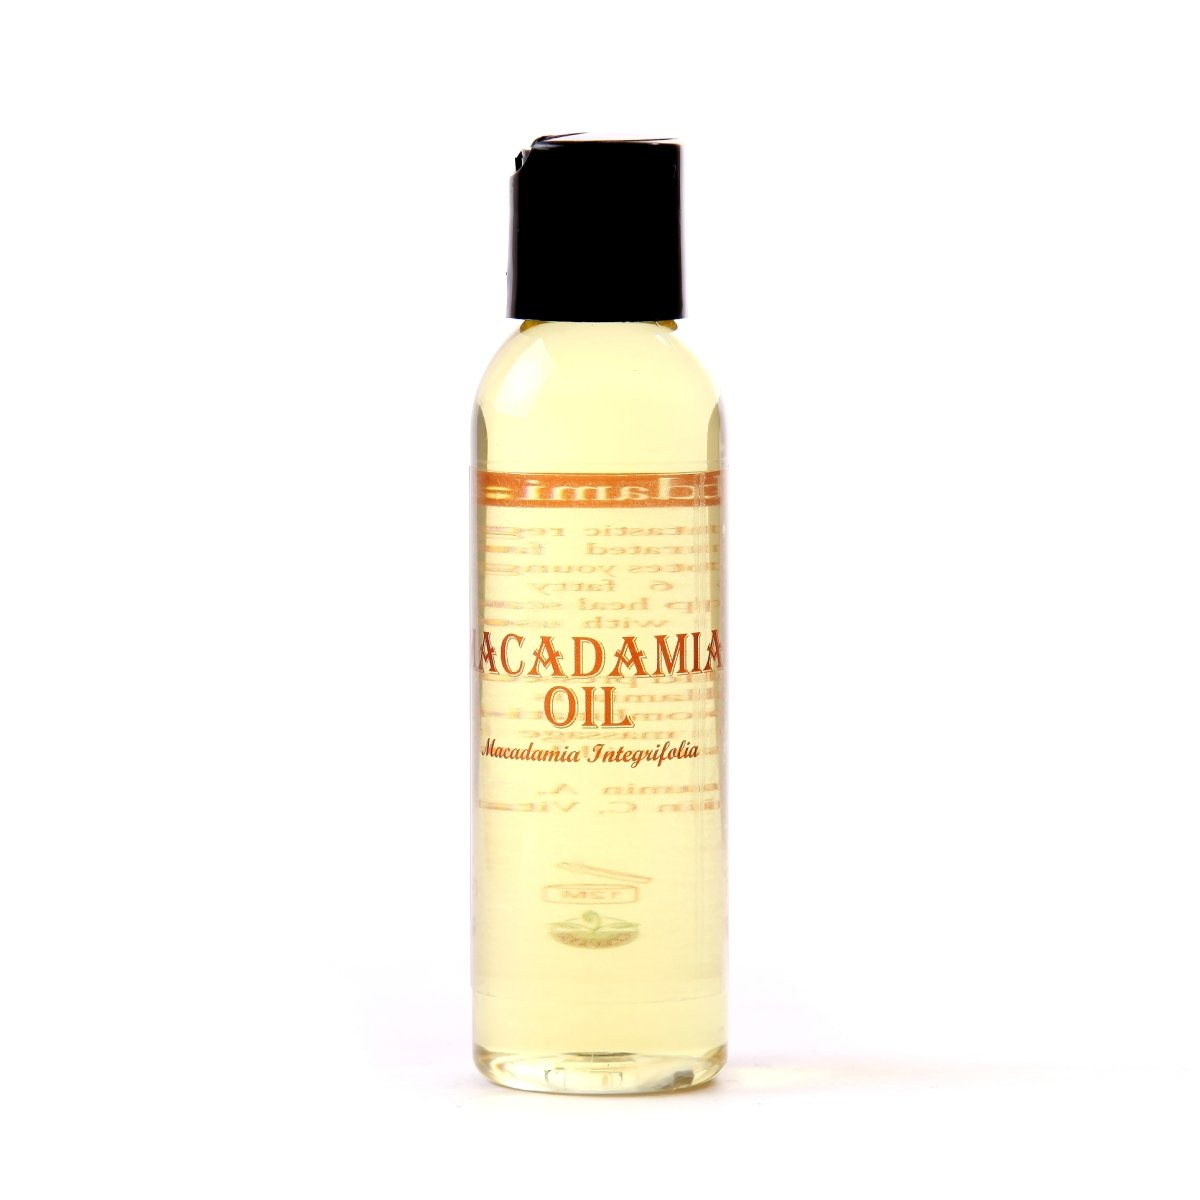 Macadamia Carrier Oil - Mystic Moments UK